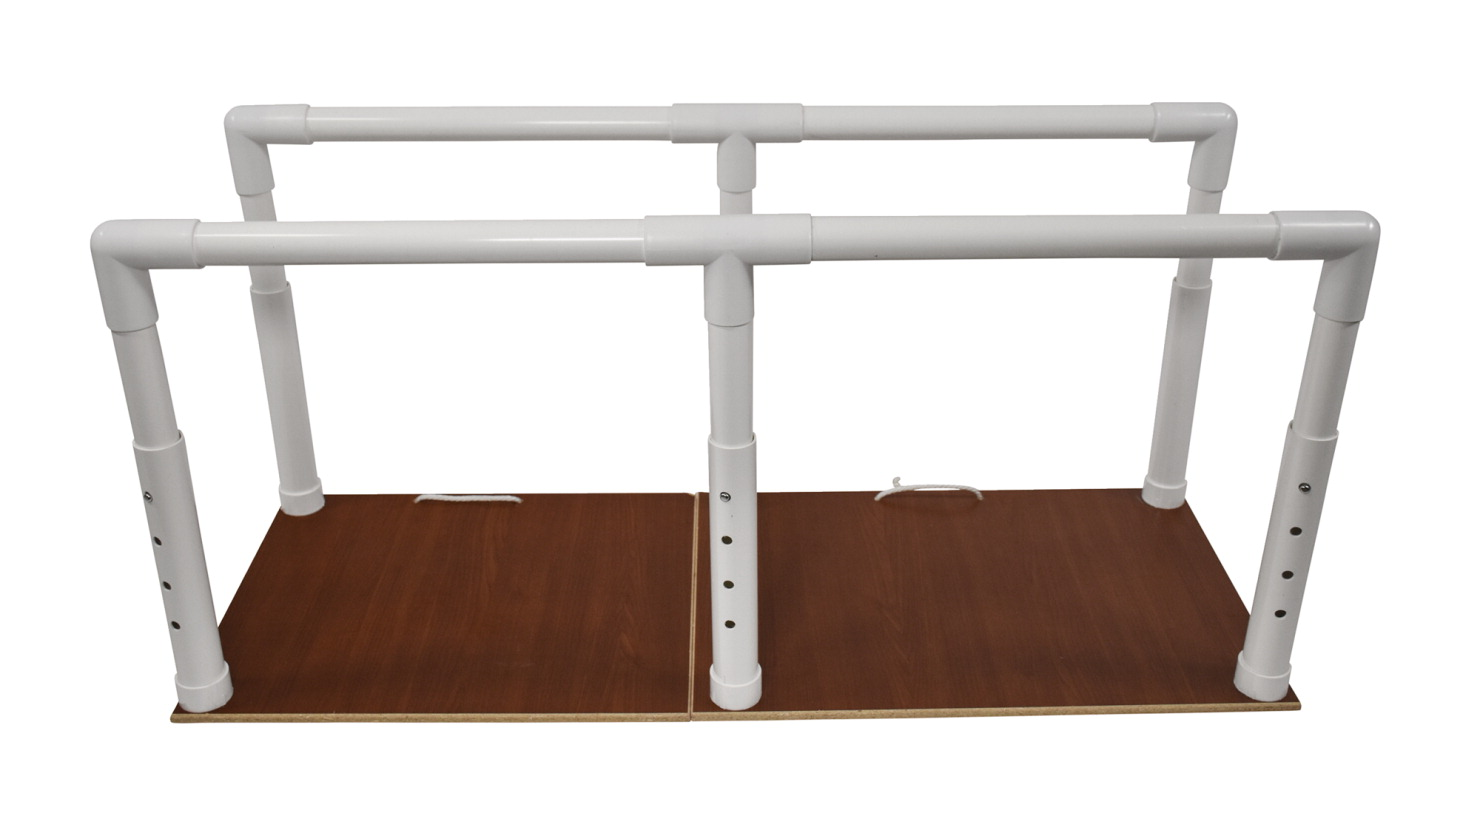 Abilitations My PortaBars Parallel Bars, 16-22 Inches Adjustable Height